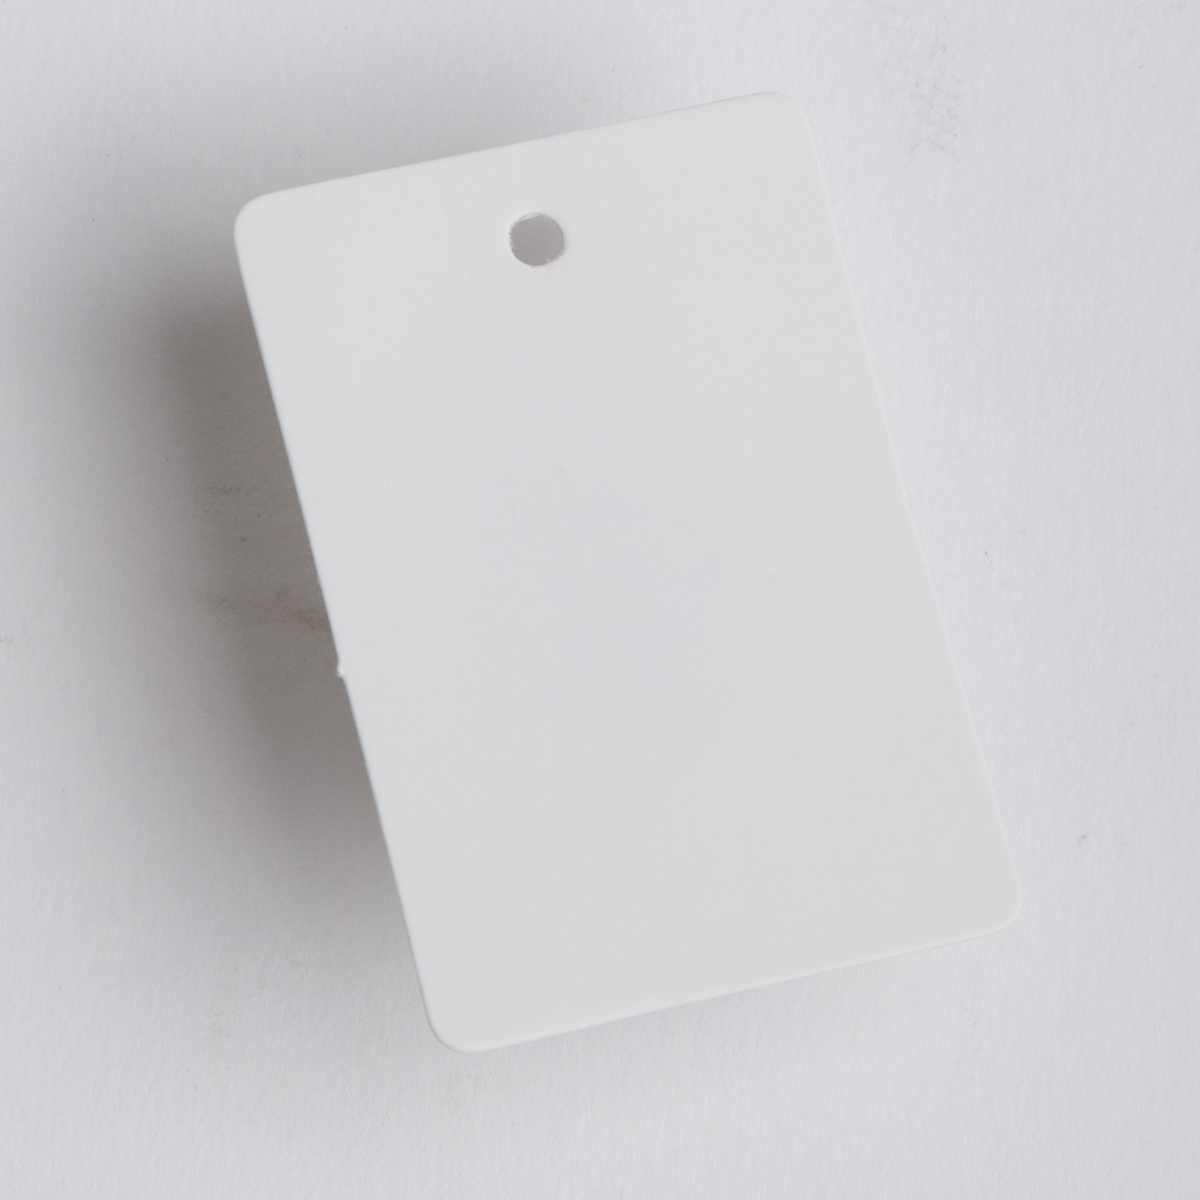 WHITE PRIC TAG-BLANK